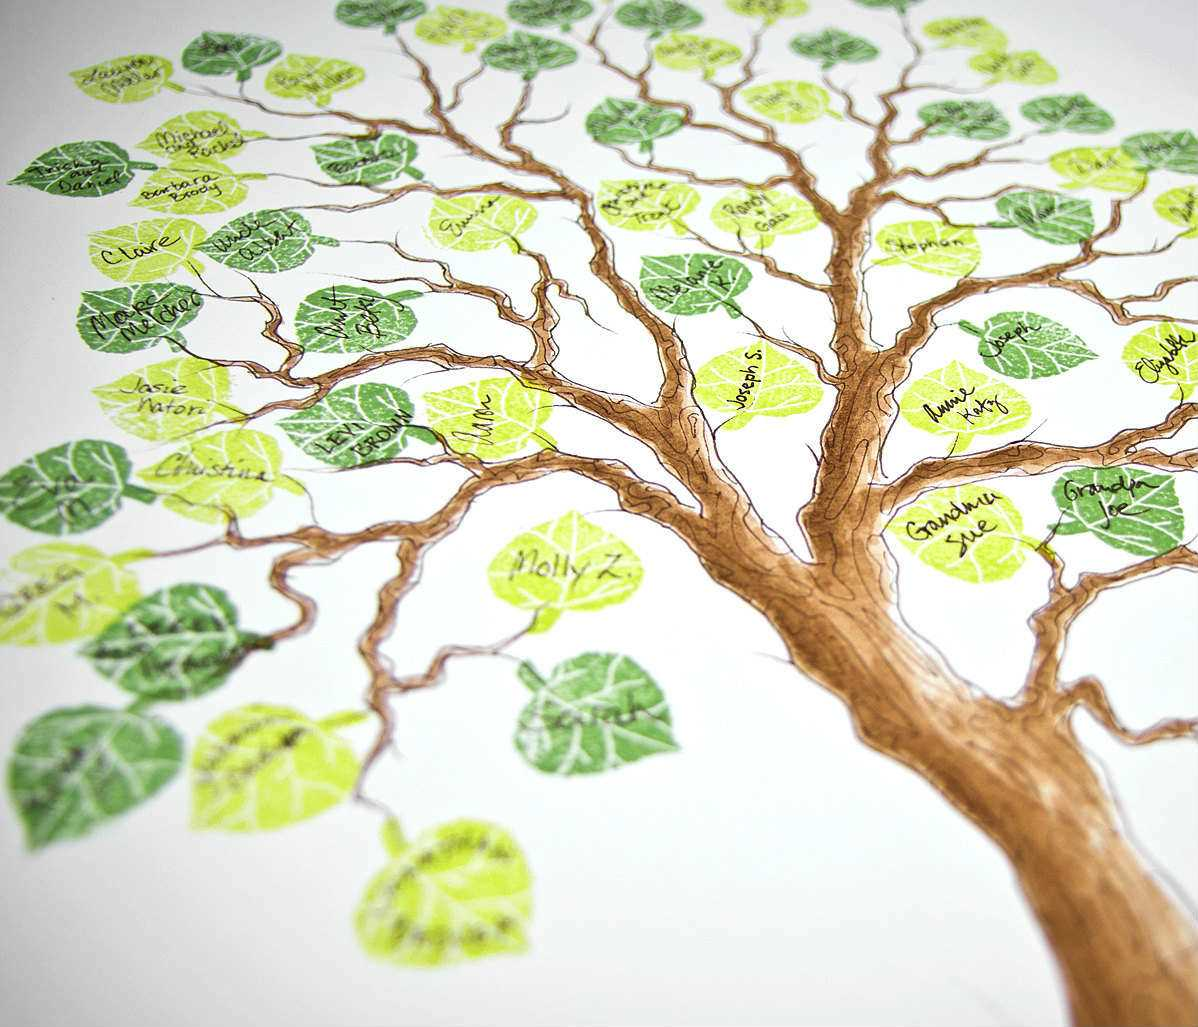 Family Tree with thumbprints